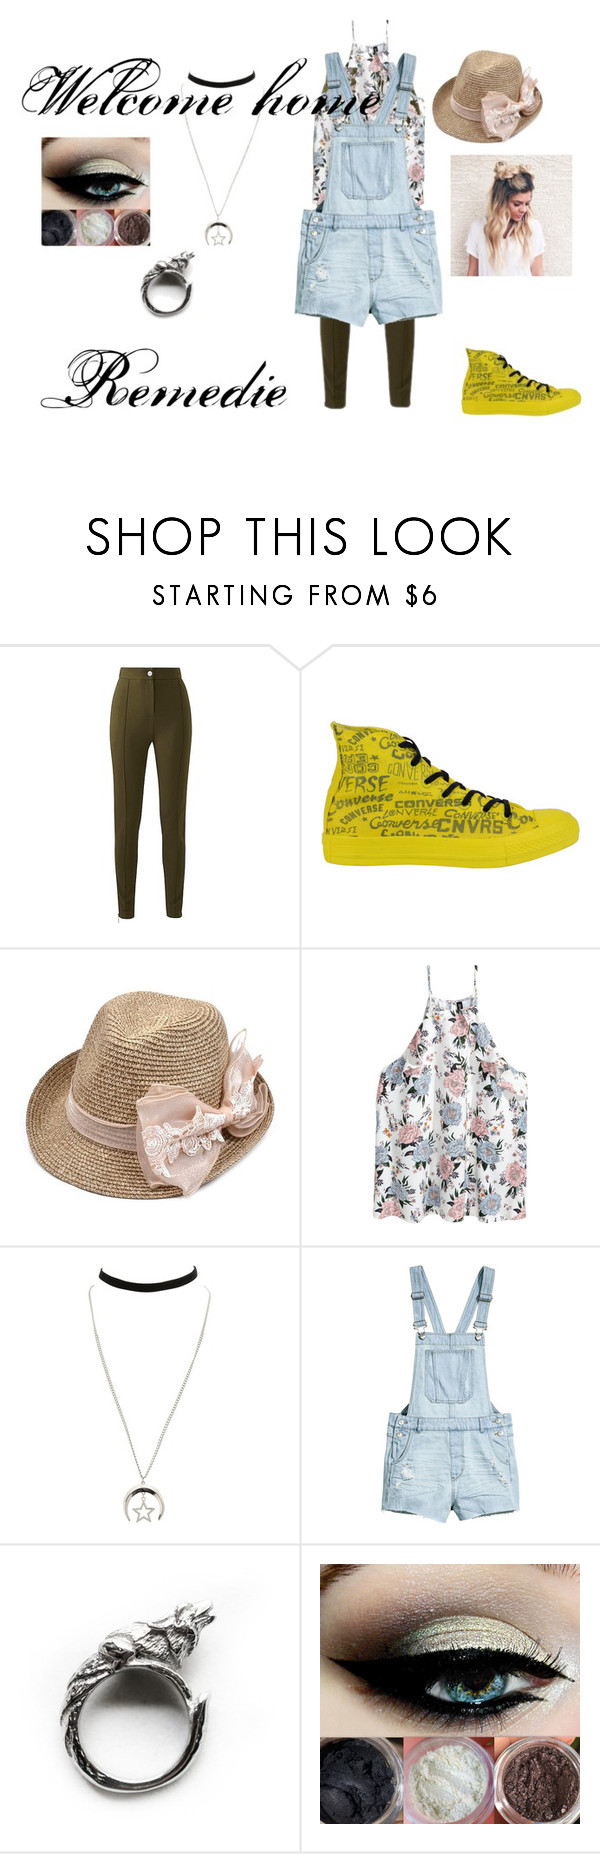 """""""Welcome home Remedie"""" by crabbies on Polyvore featuring Converse and Charlotte Russe"""